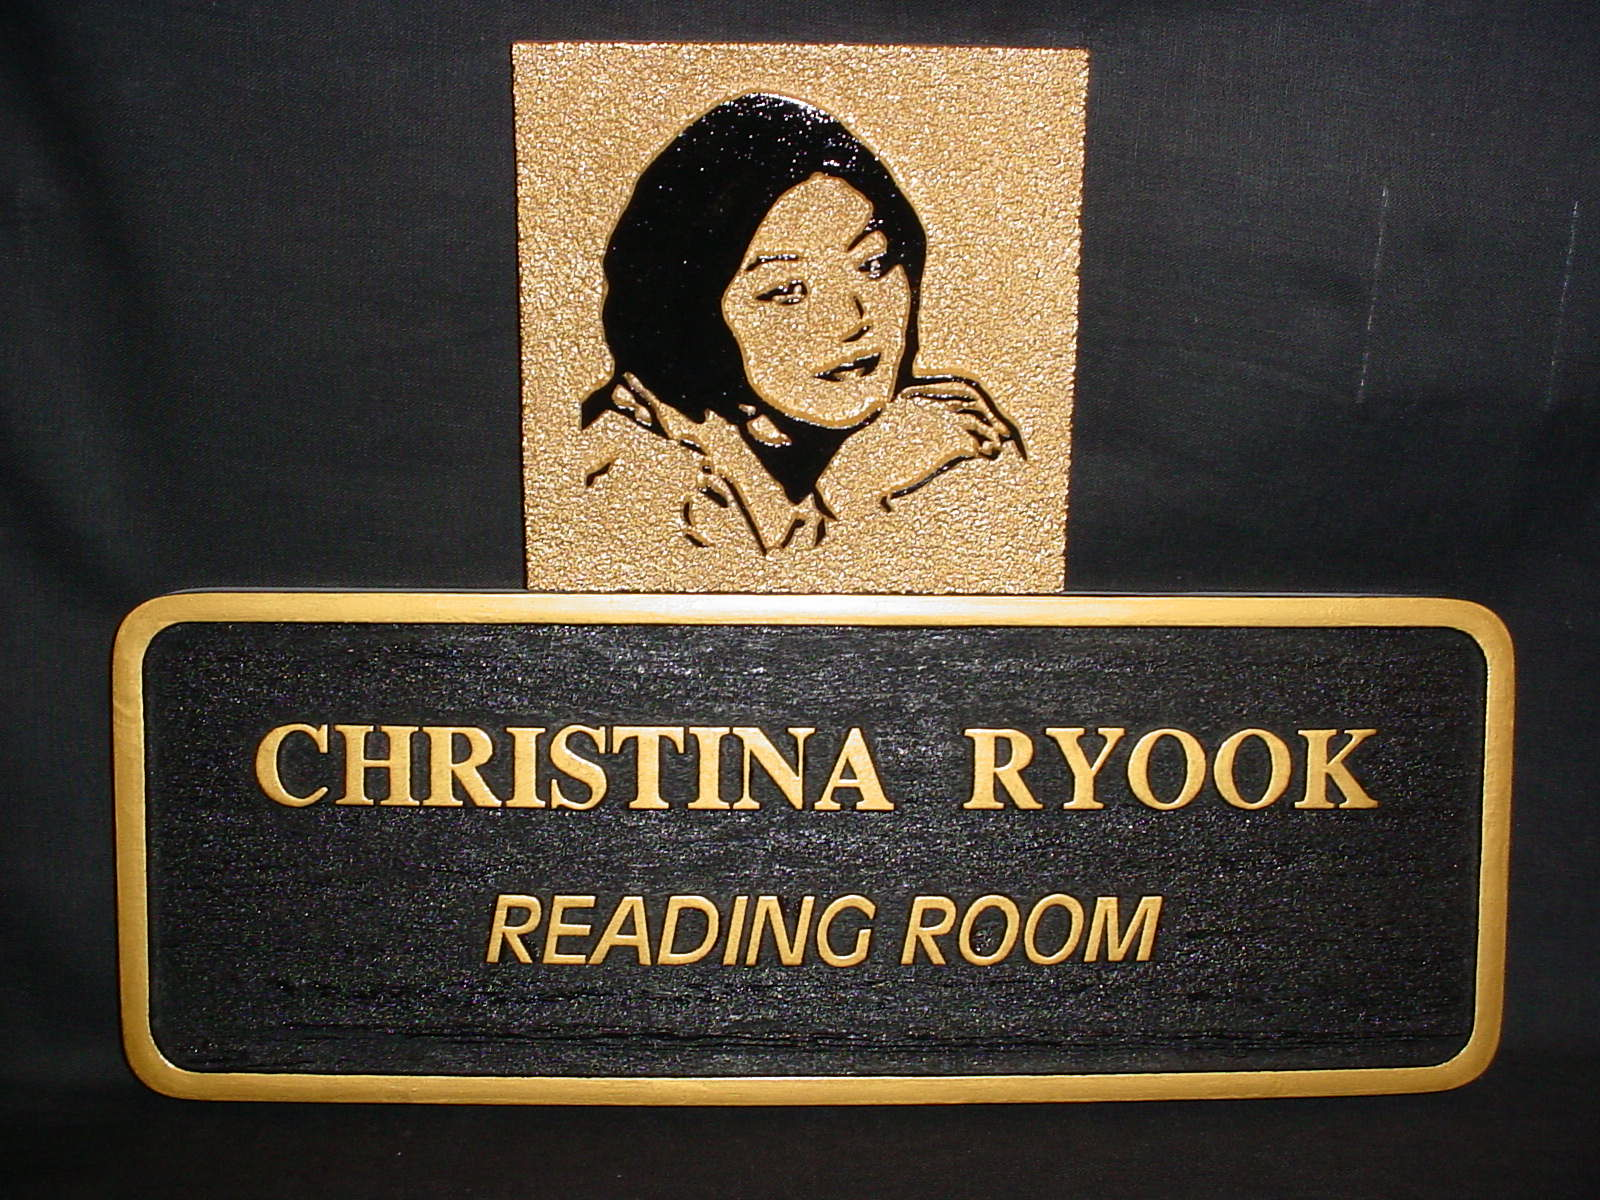 Christina Ryook Reading Room sign for the library - designed and sandblasted by the T & E Department